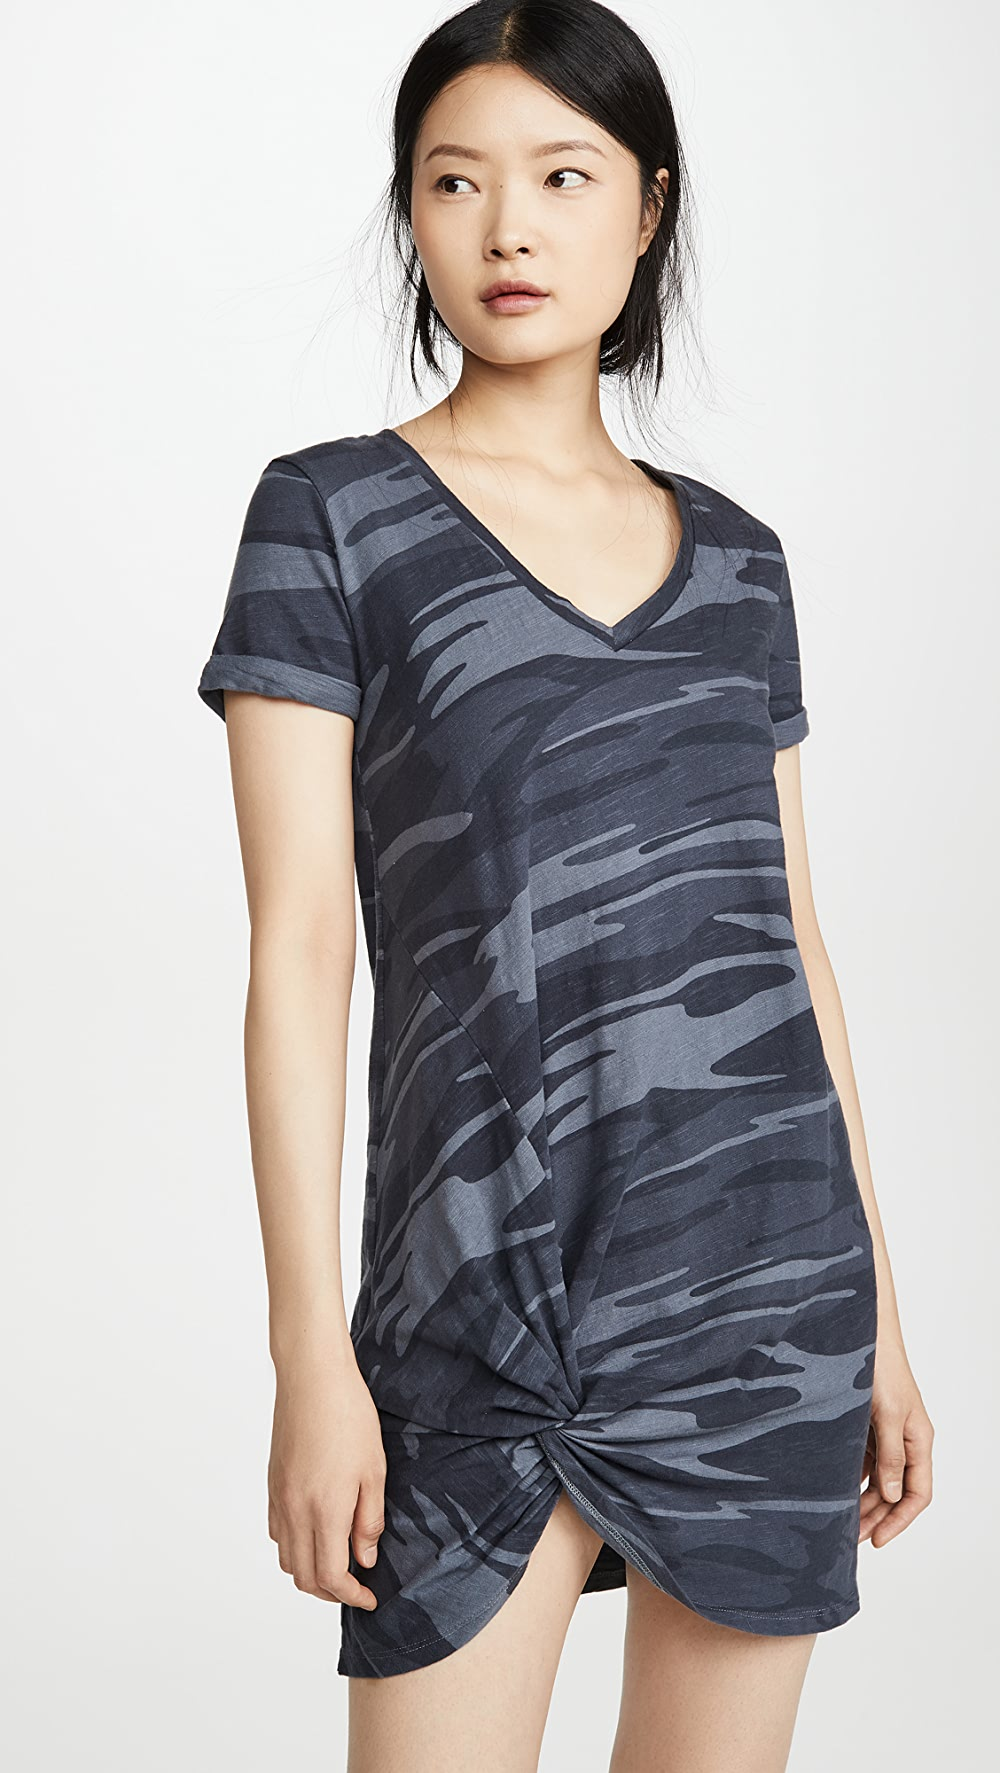 Constructive Z Supply - Side Knot Camo Dress Good For Energy And The Spleen